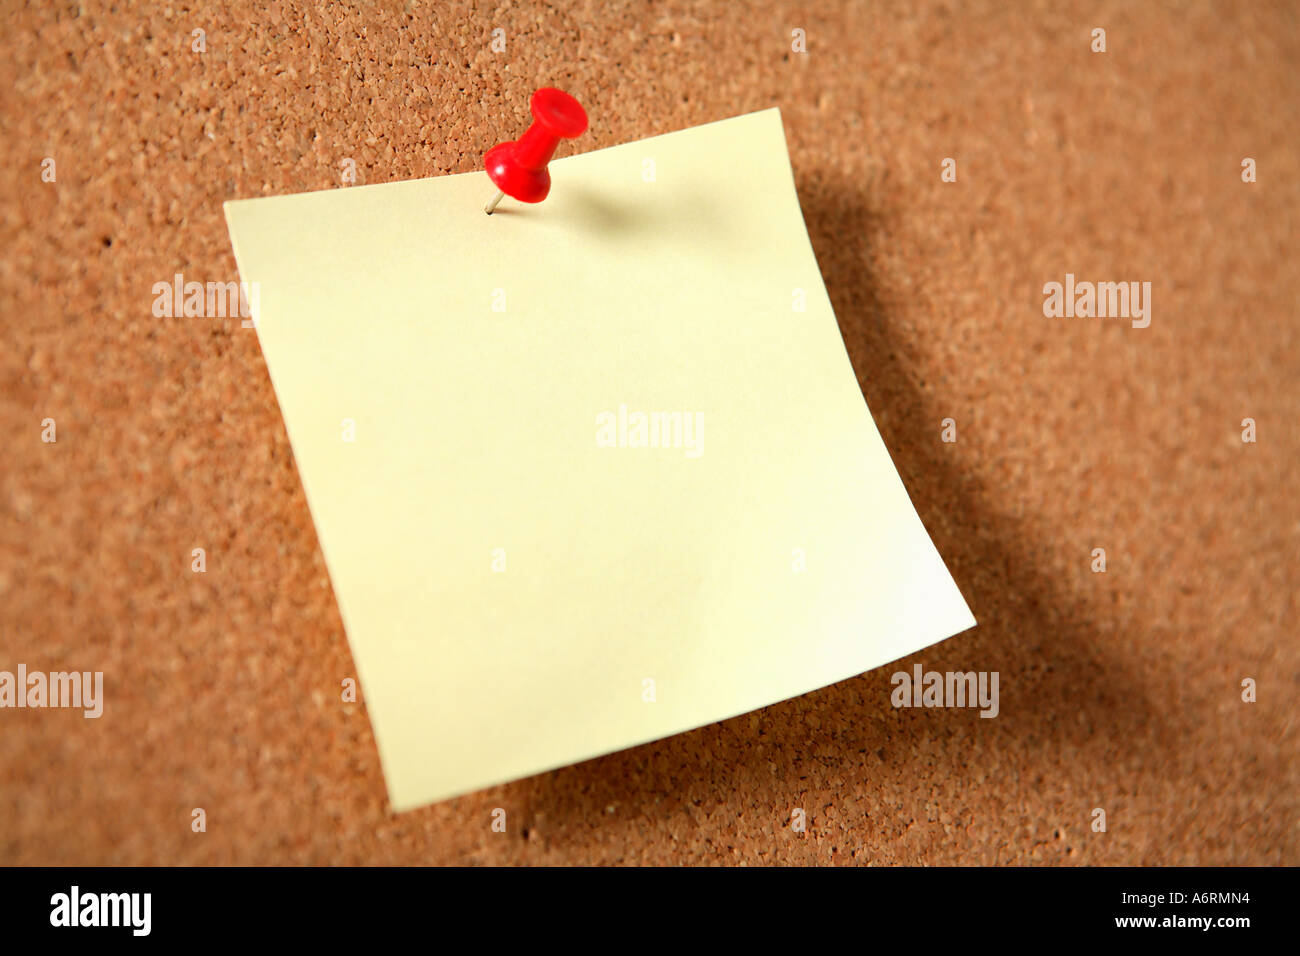 Blank reminder note pinned to cork board. - Stock Image